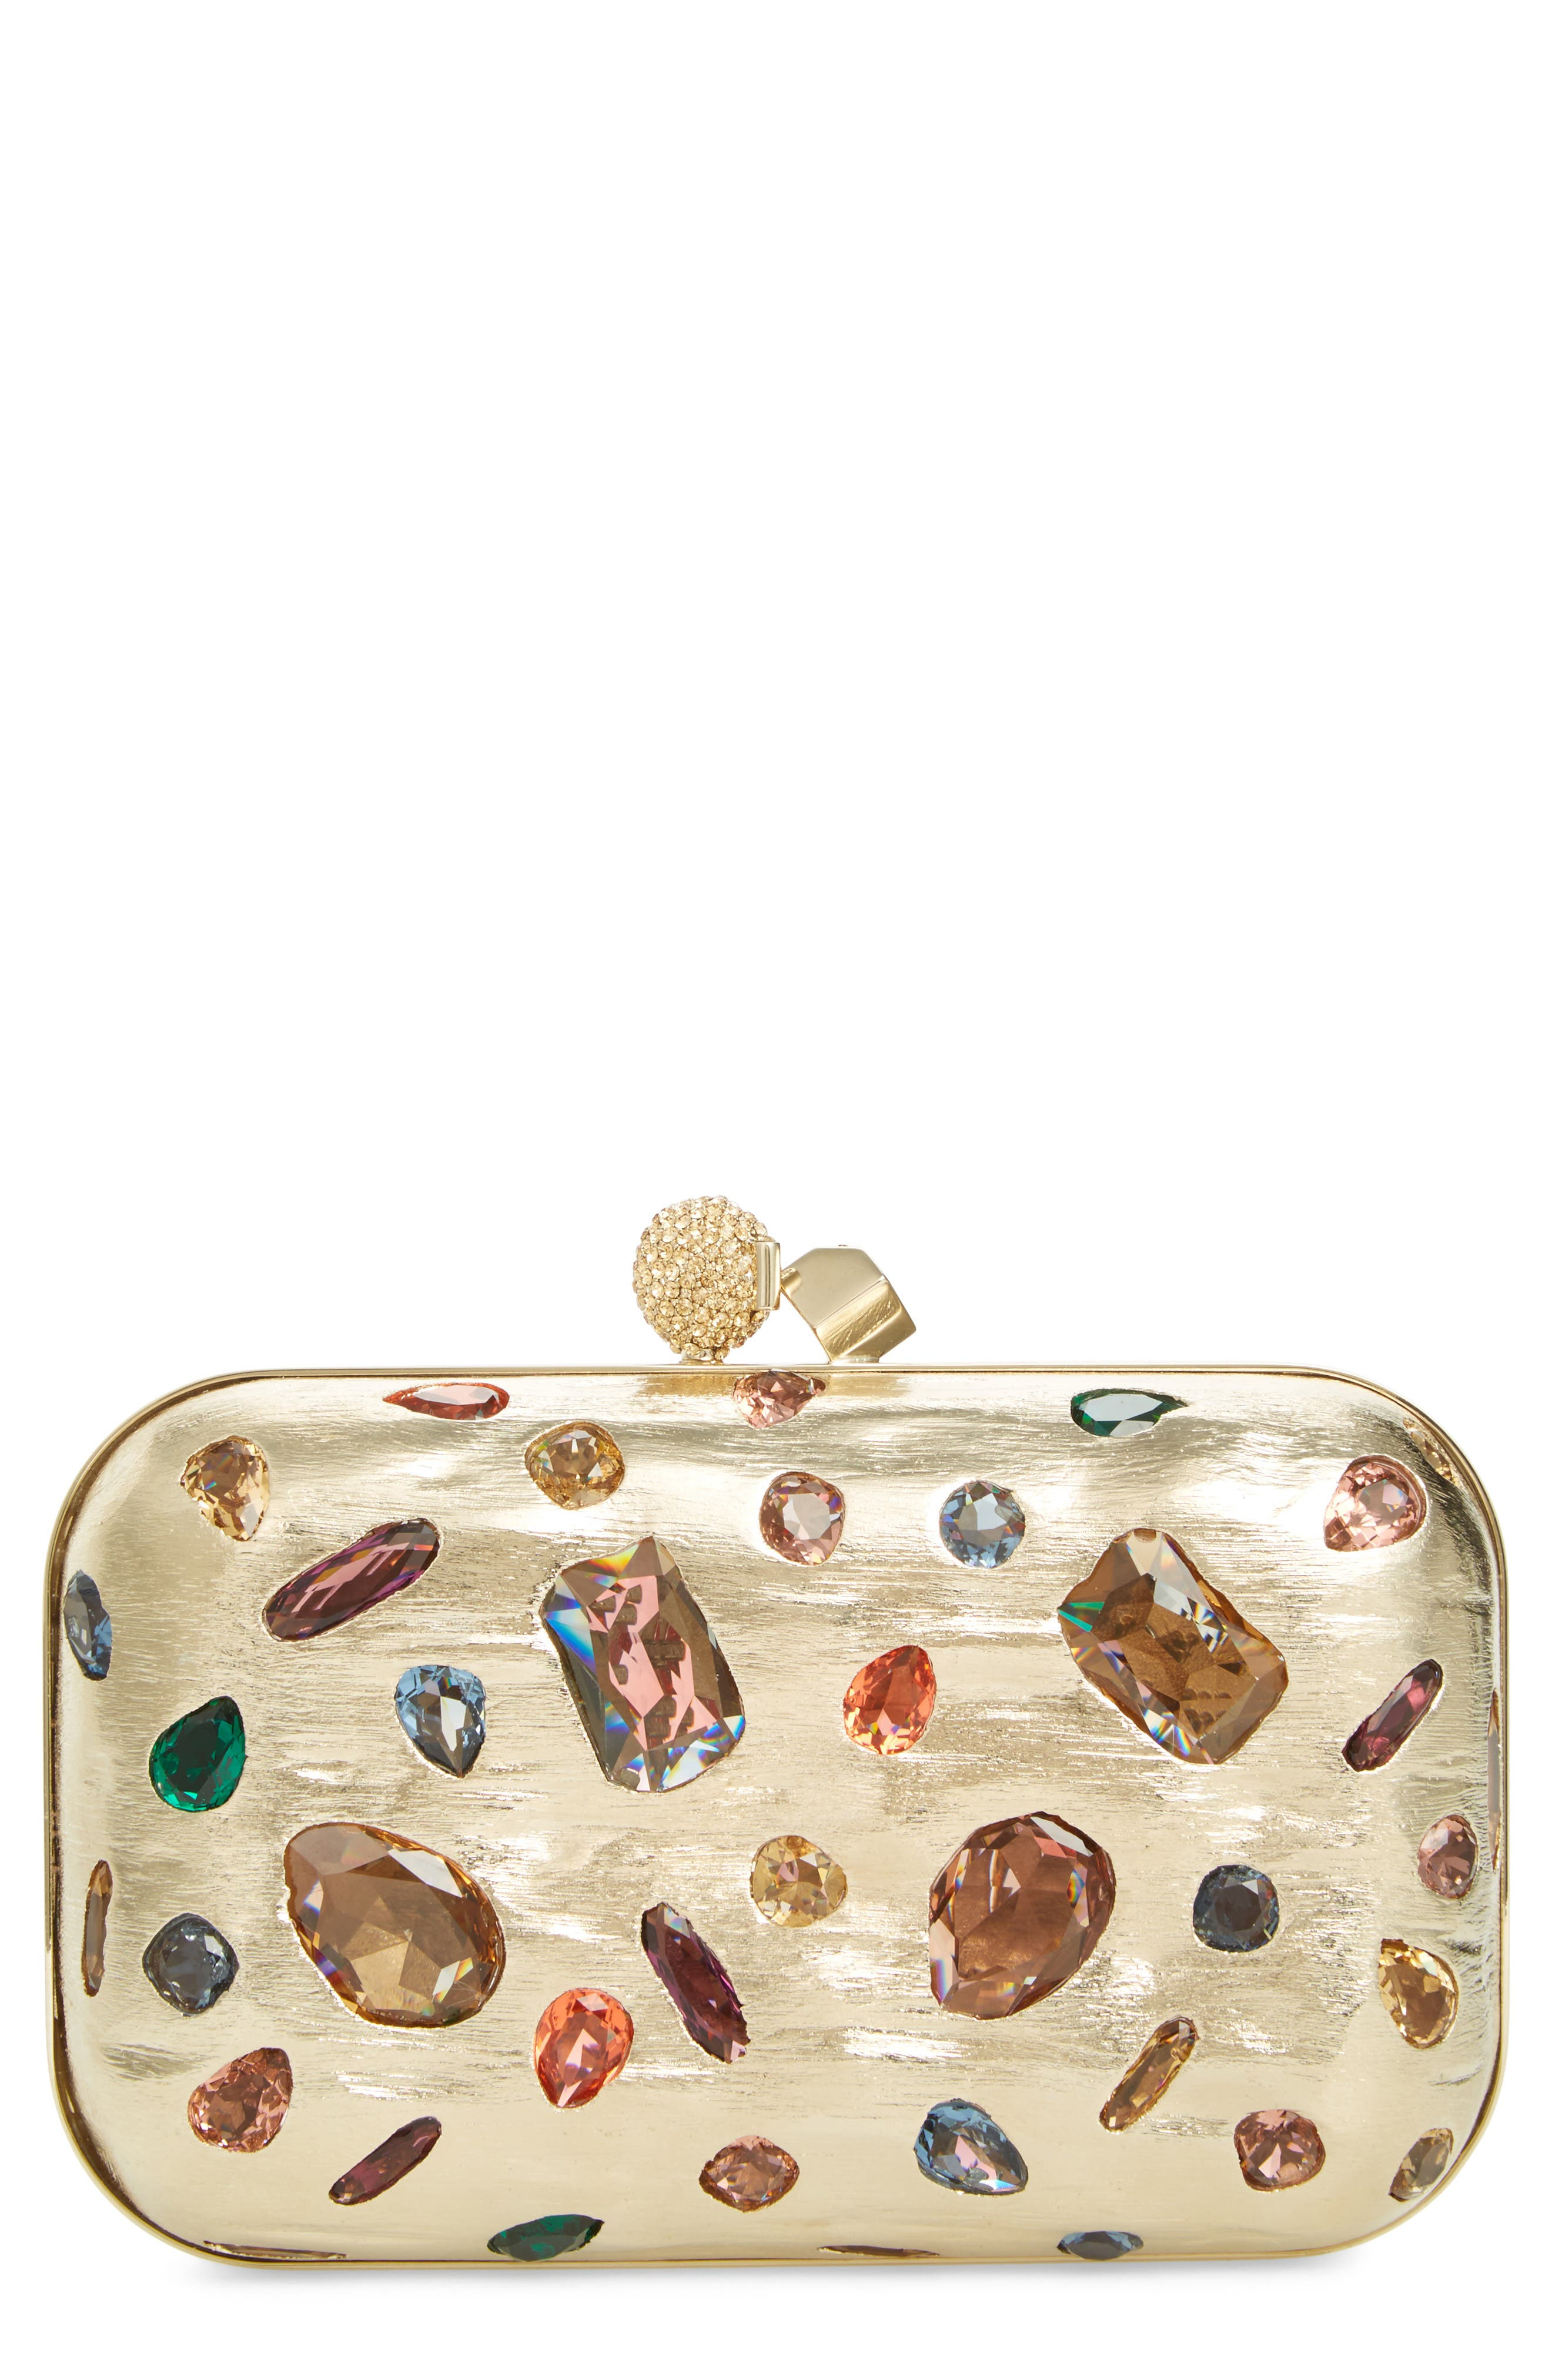 Main Image - Jimmy Choo Cloud Minaudière Crystal Embellished Metallic Box Clutch